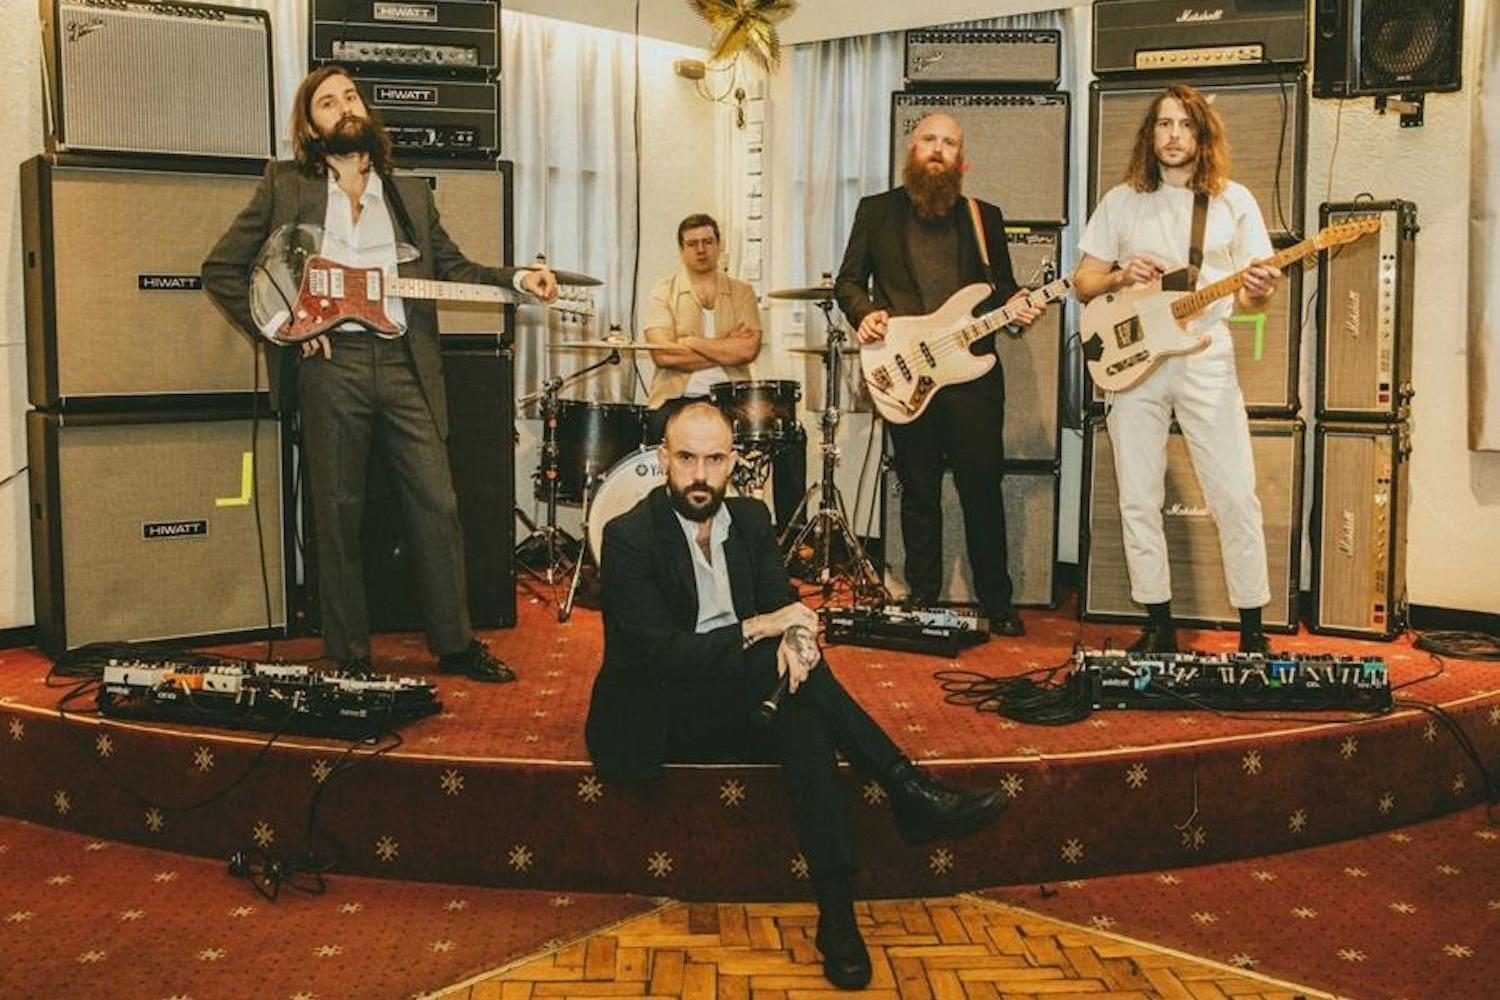 IDLES are going to play a huge live show in Bristol